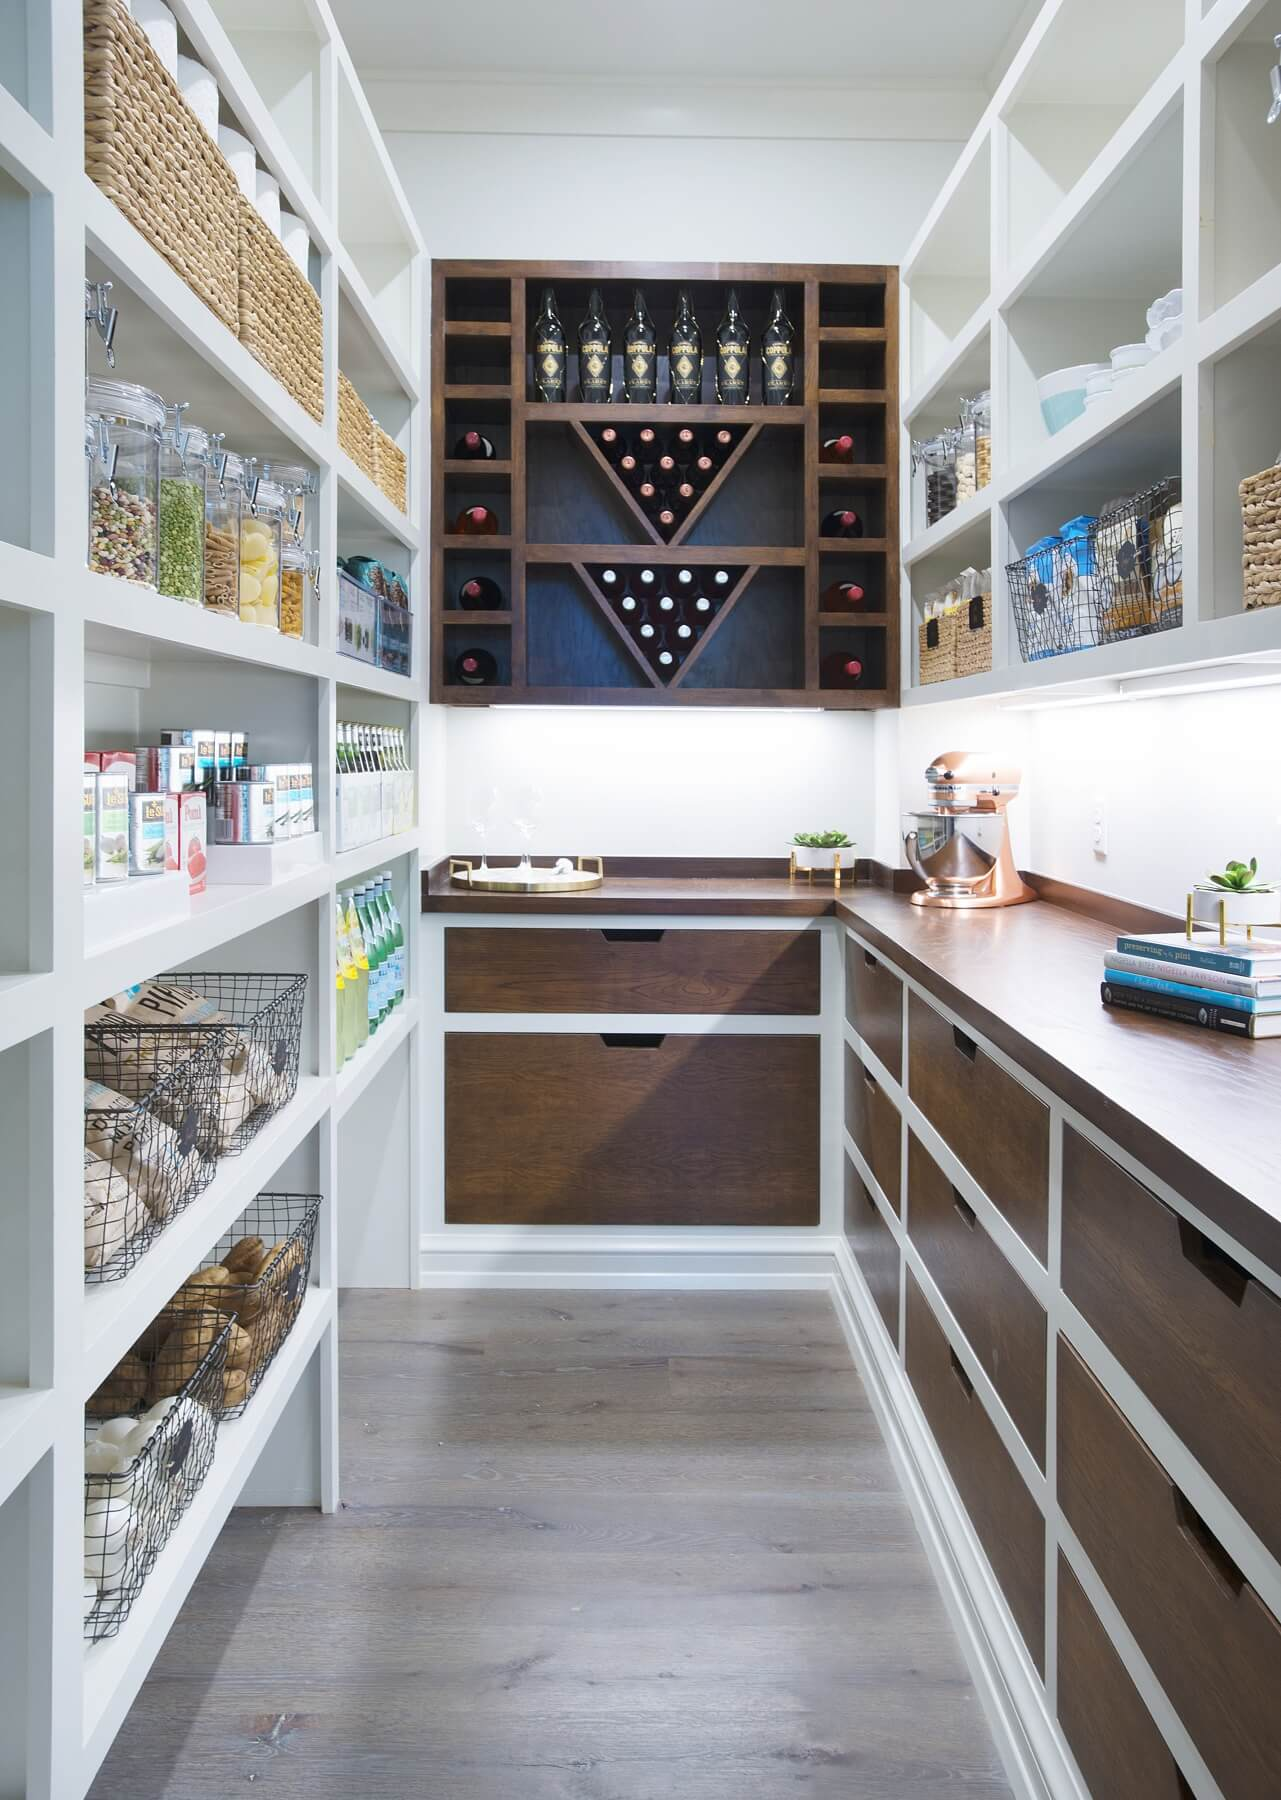 Pantries are much more than just food storage spaces. Stow away appliances, store your wine, house extra dishes and more.